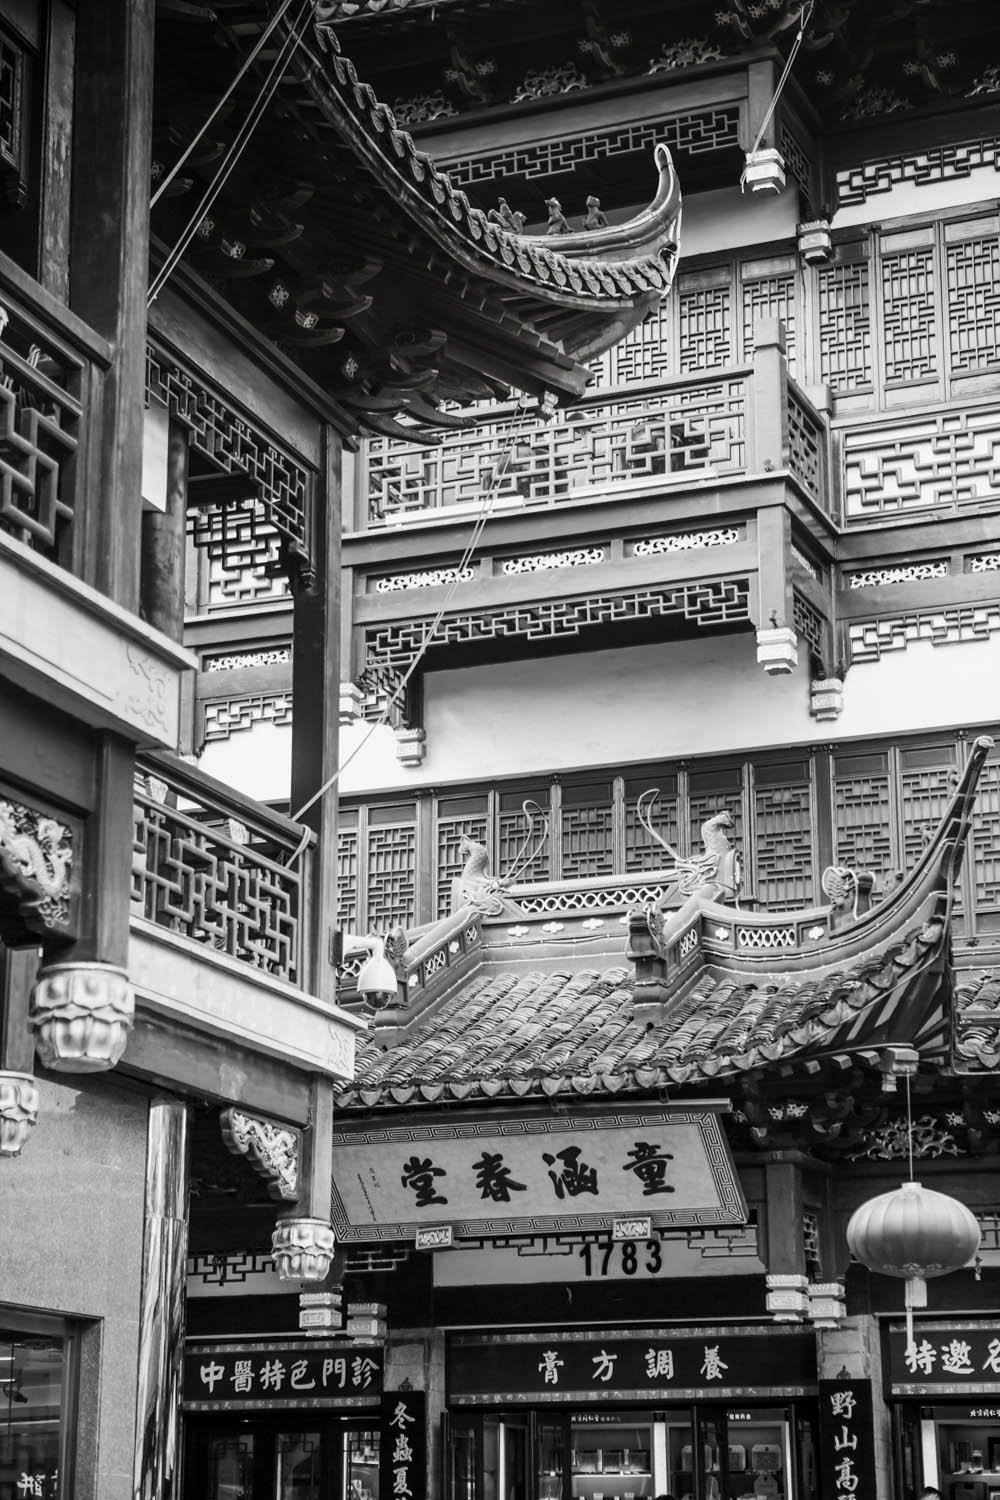 Black and white photograph of traditional Chinese architecture